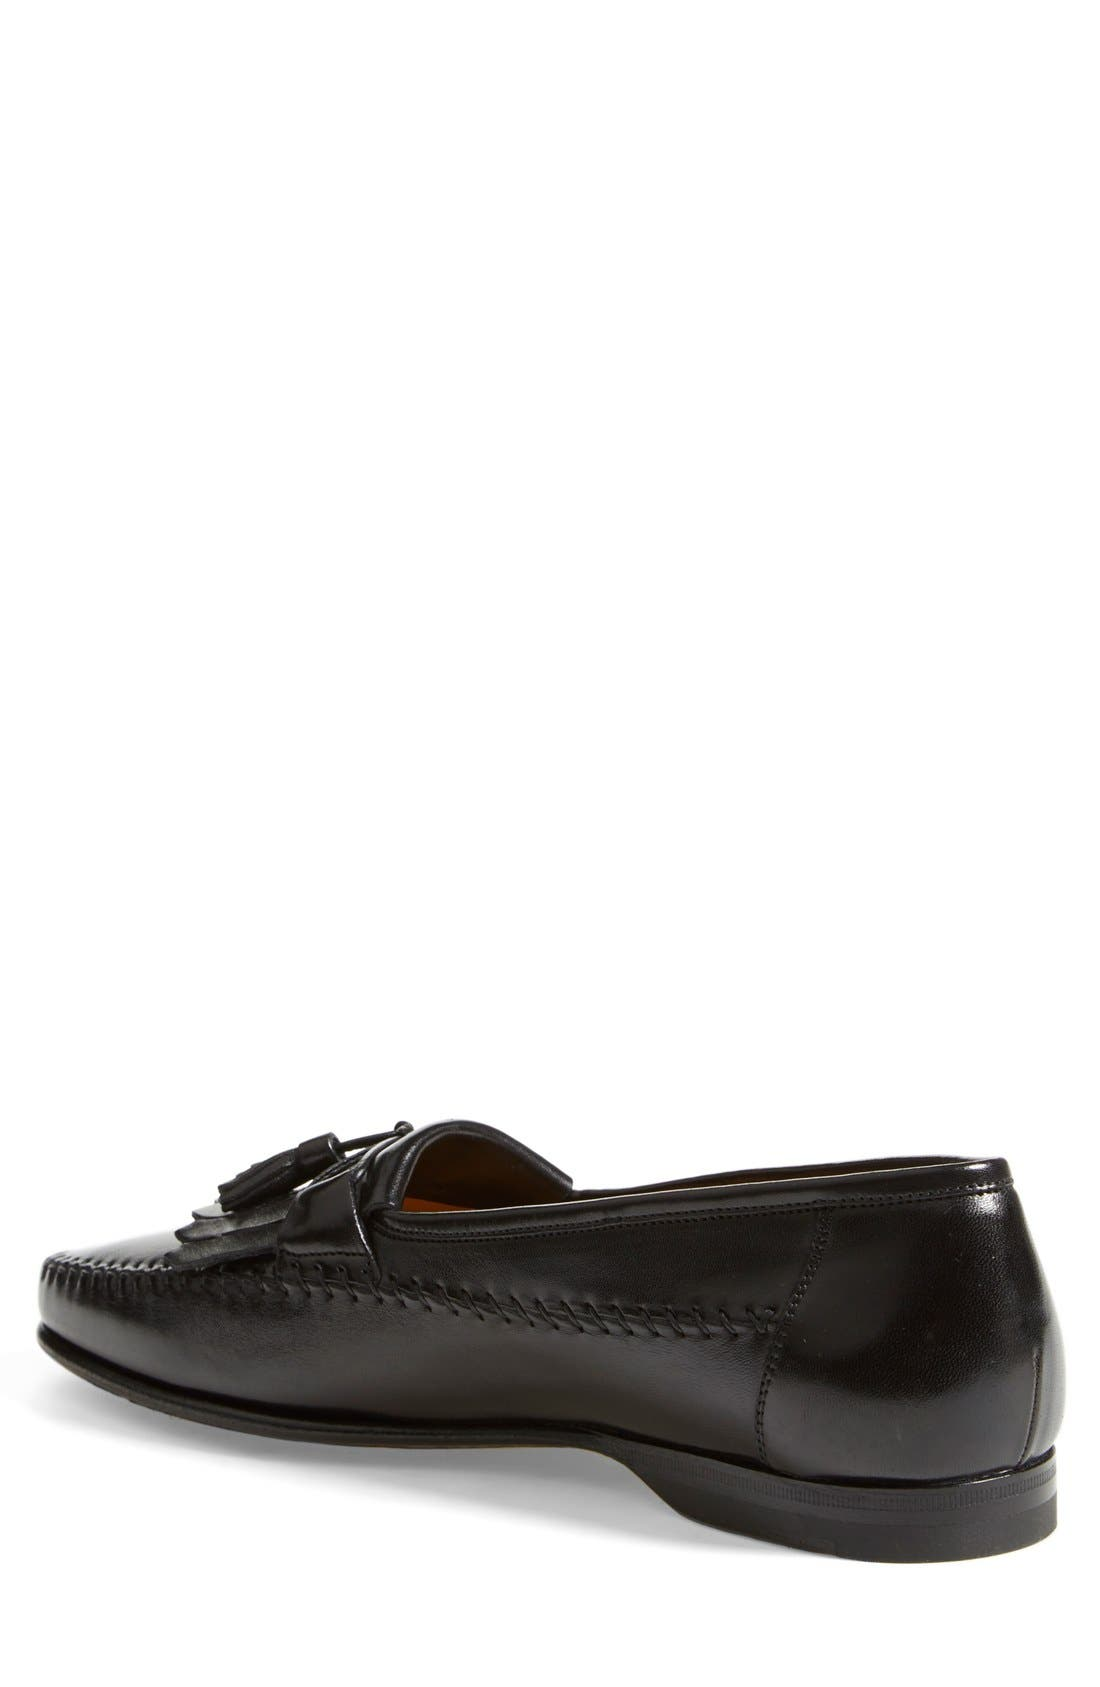 'Forester' Kiltie Tassel Loafer,                             Alternate thumbnail 6, color,                             001